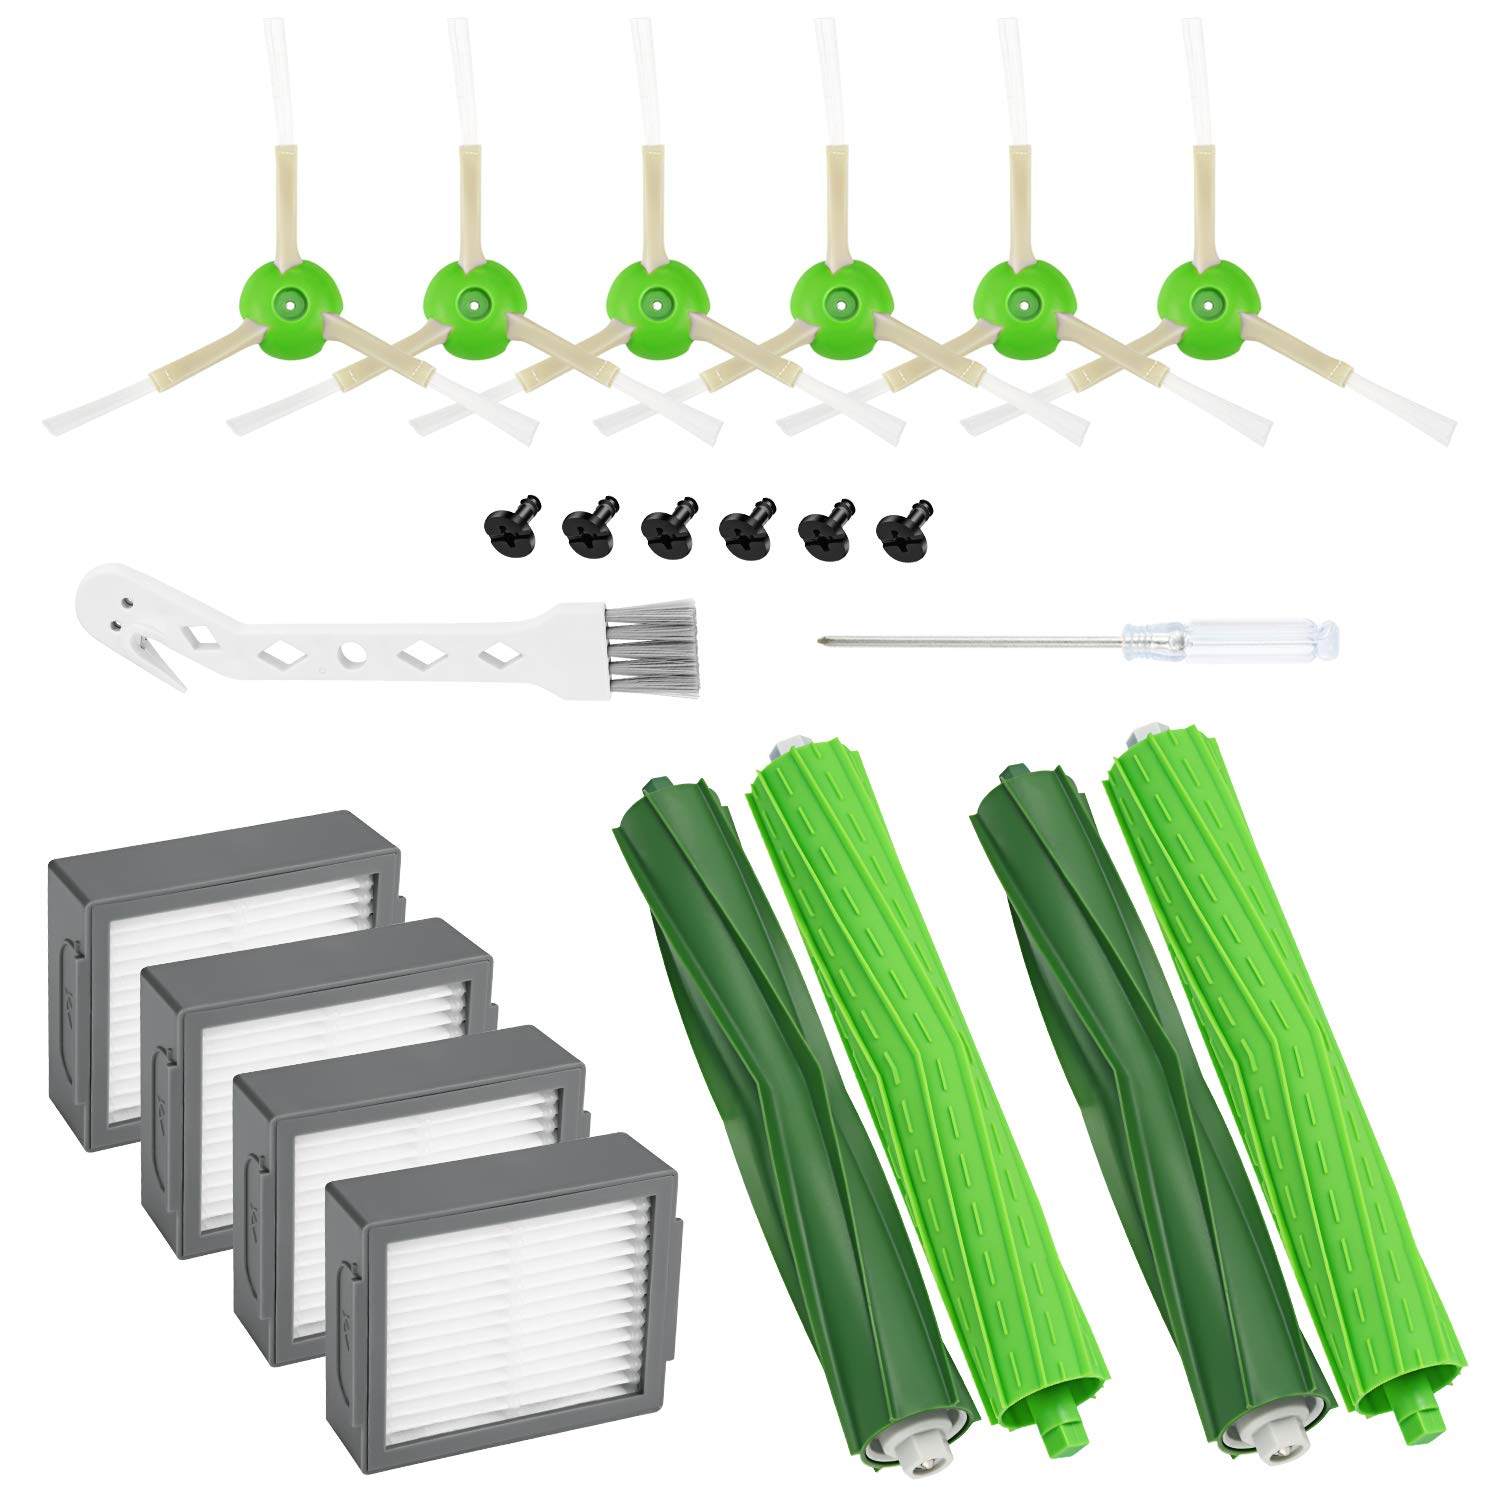 Cabiclean 14 Pack Replacement Accessory Kit Compatible with iRobot Roomba i7 i7+, 4 Filters, 6 Side Brushes, 2 Set Multi-Surface Rubber Brushes